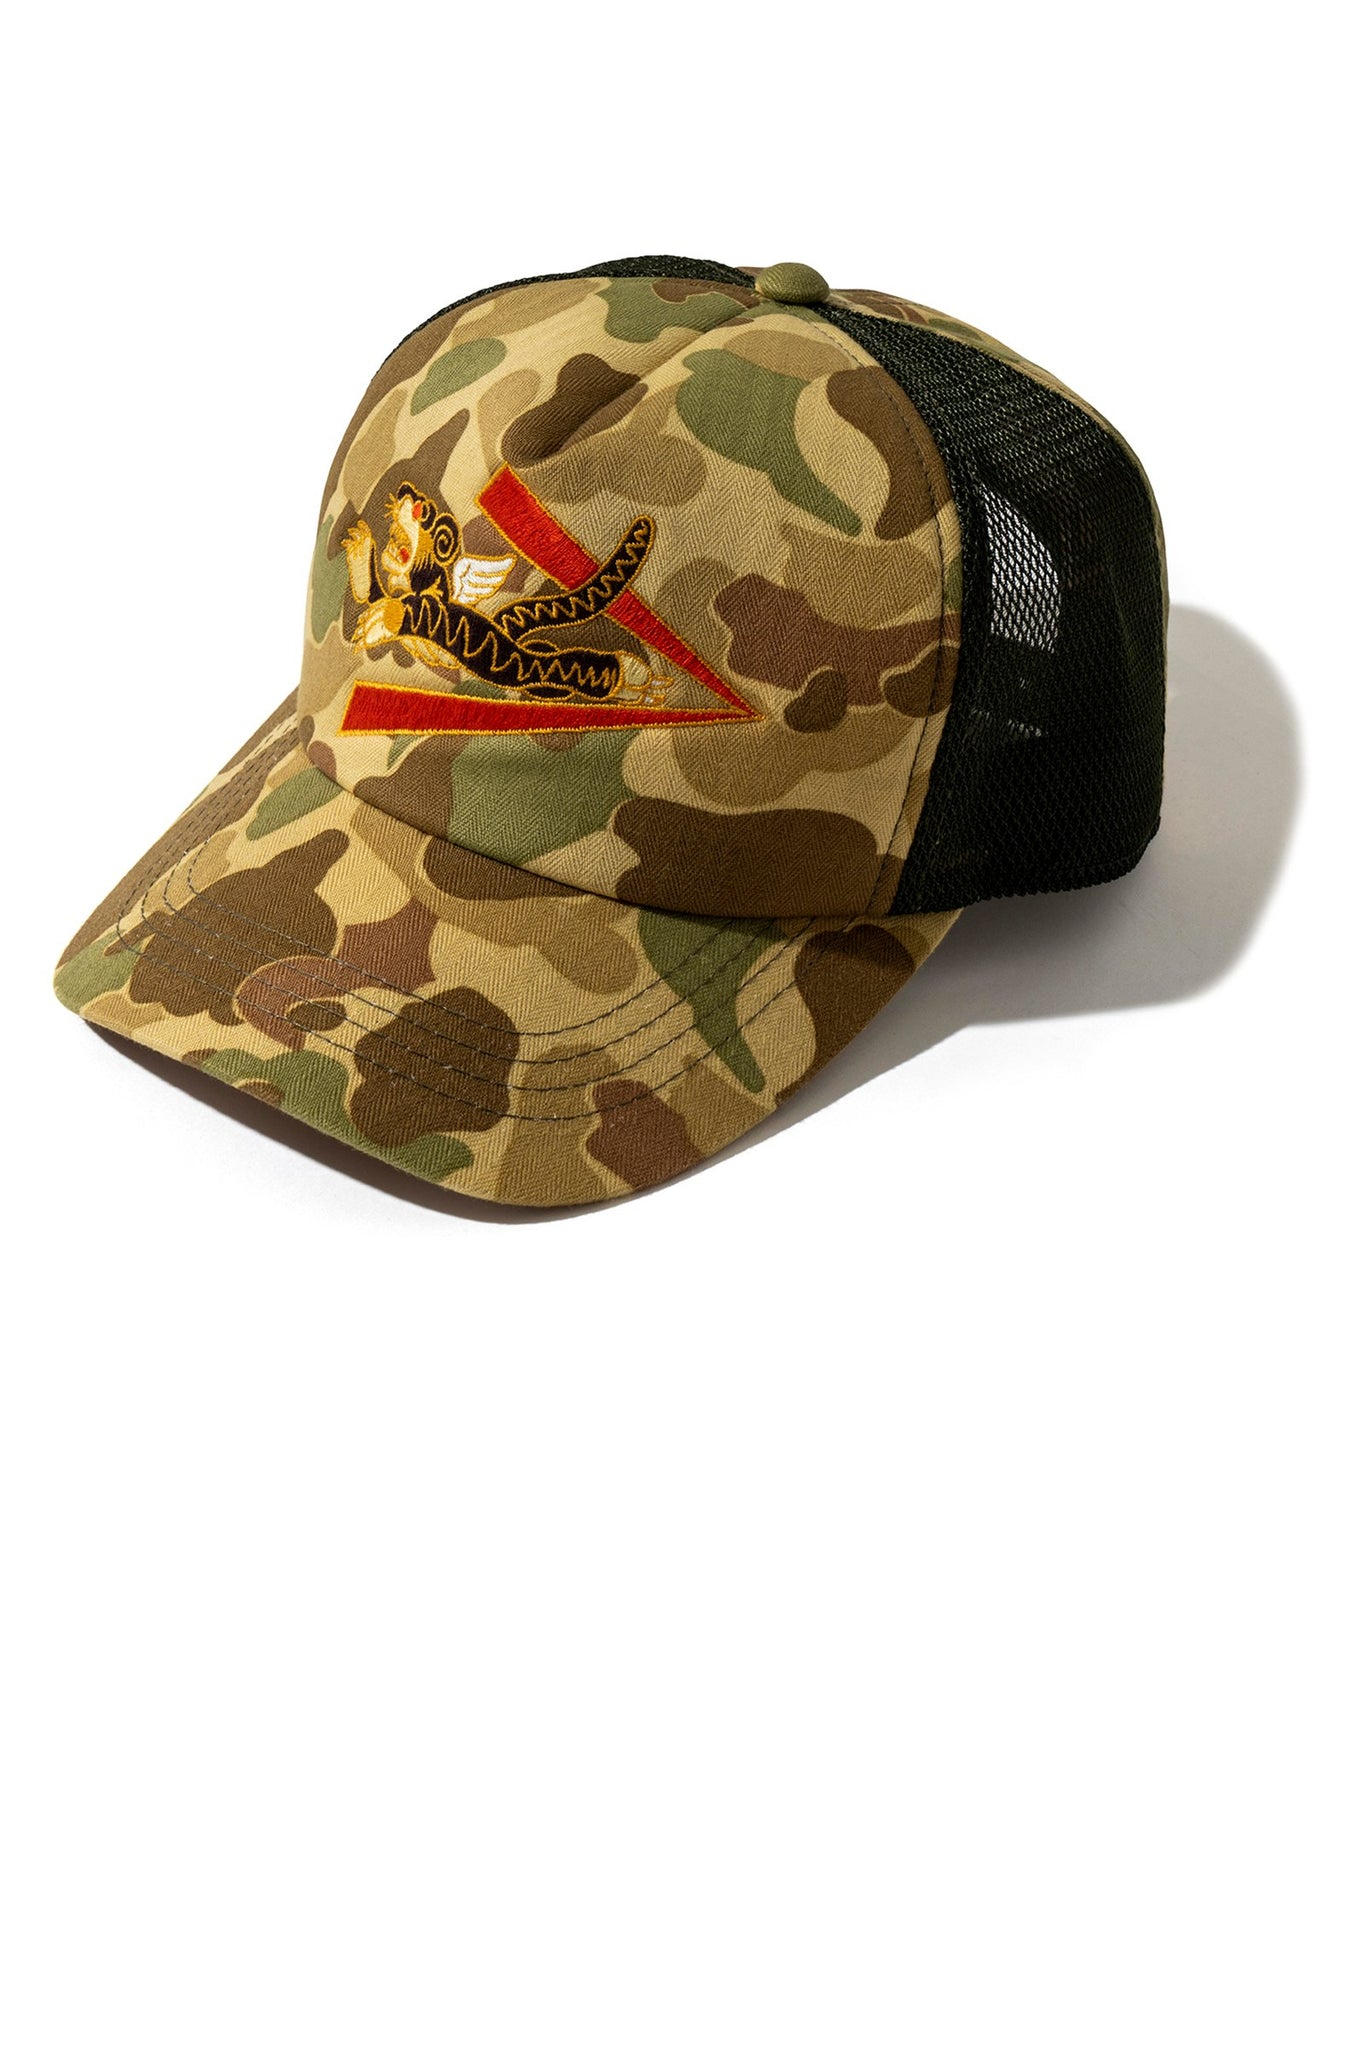 FLYING TIGERS CAMOUFLAGE MESH CAP